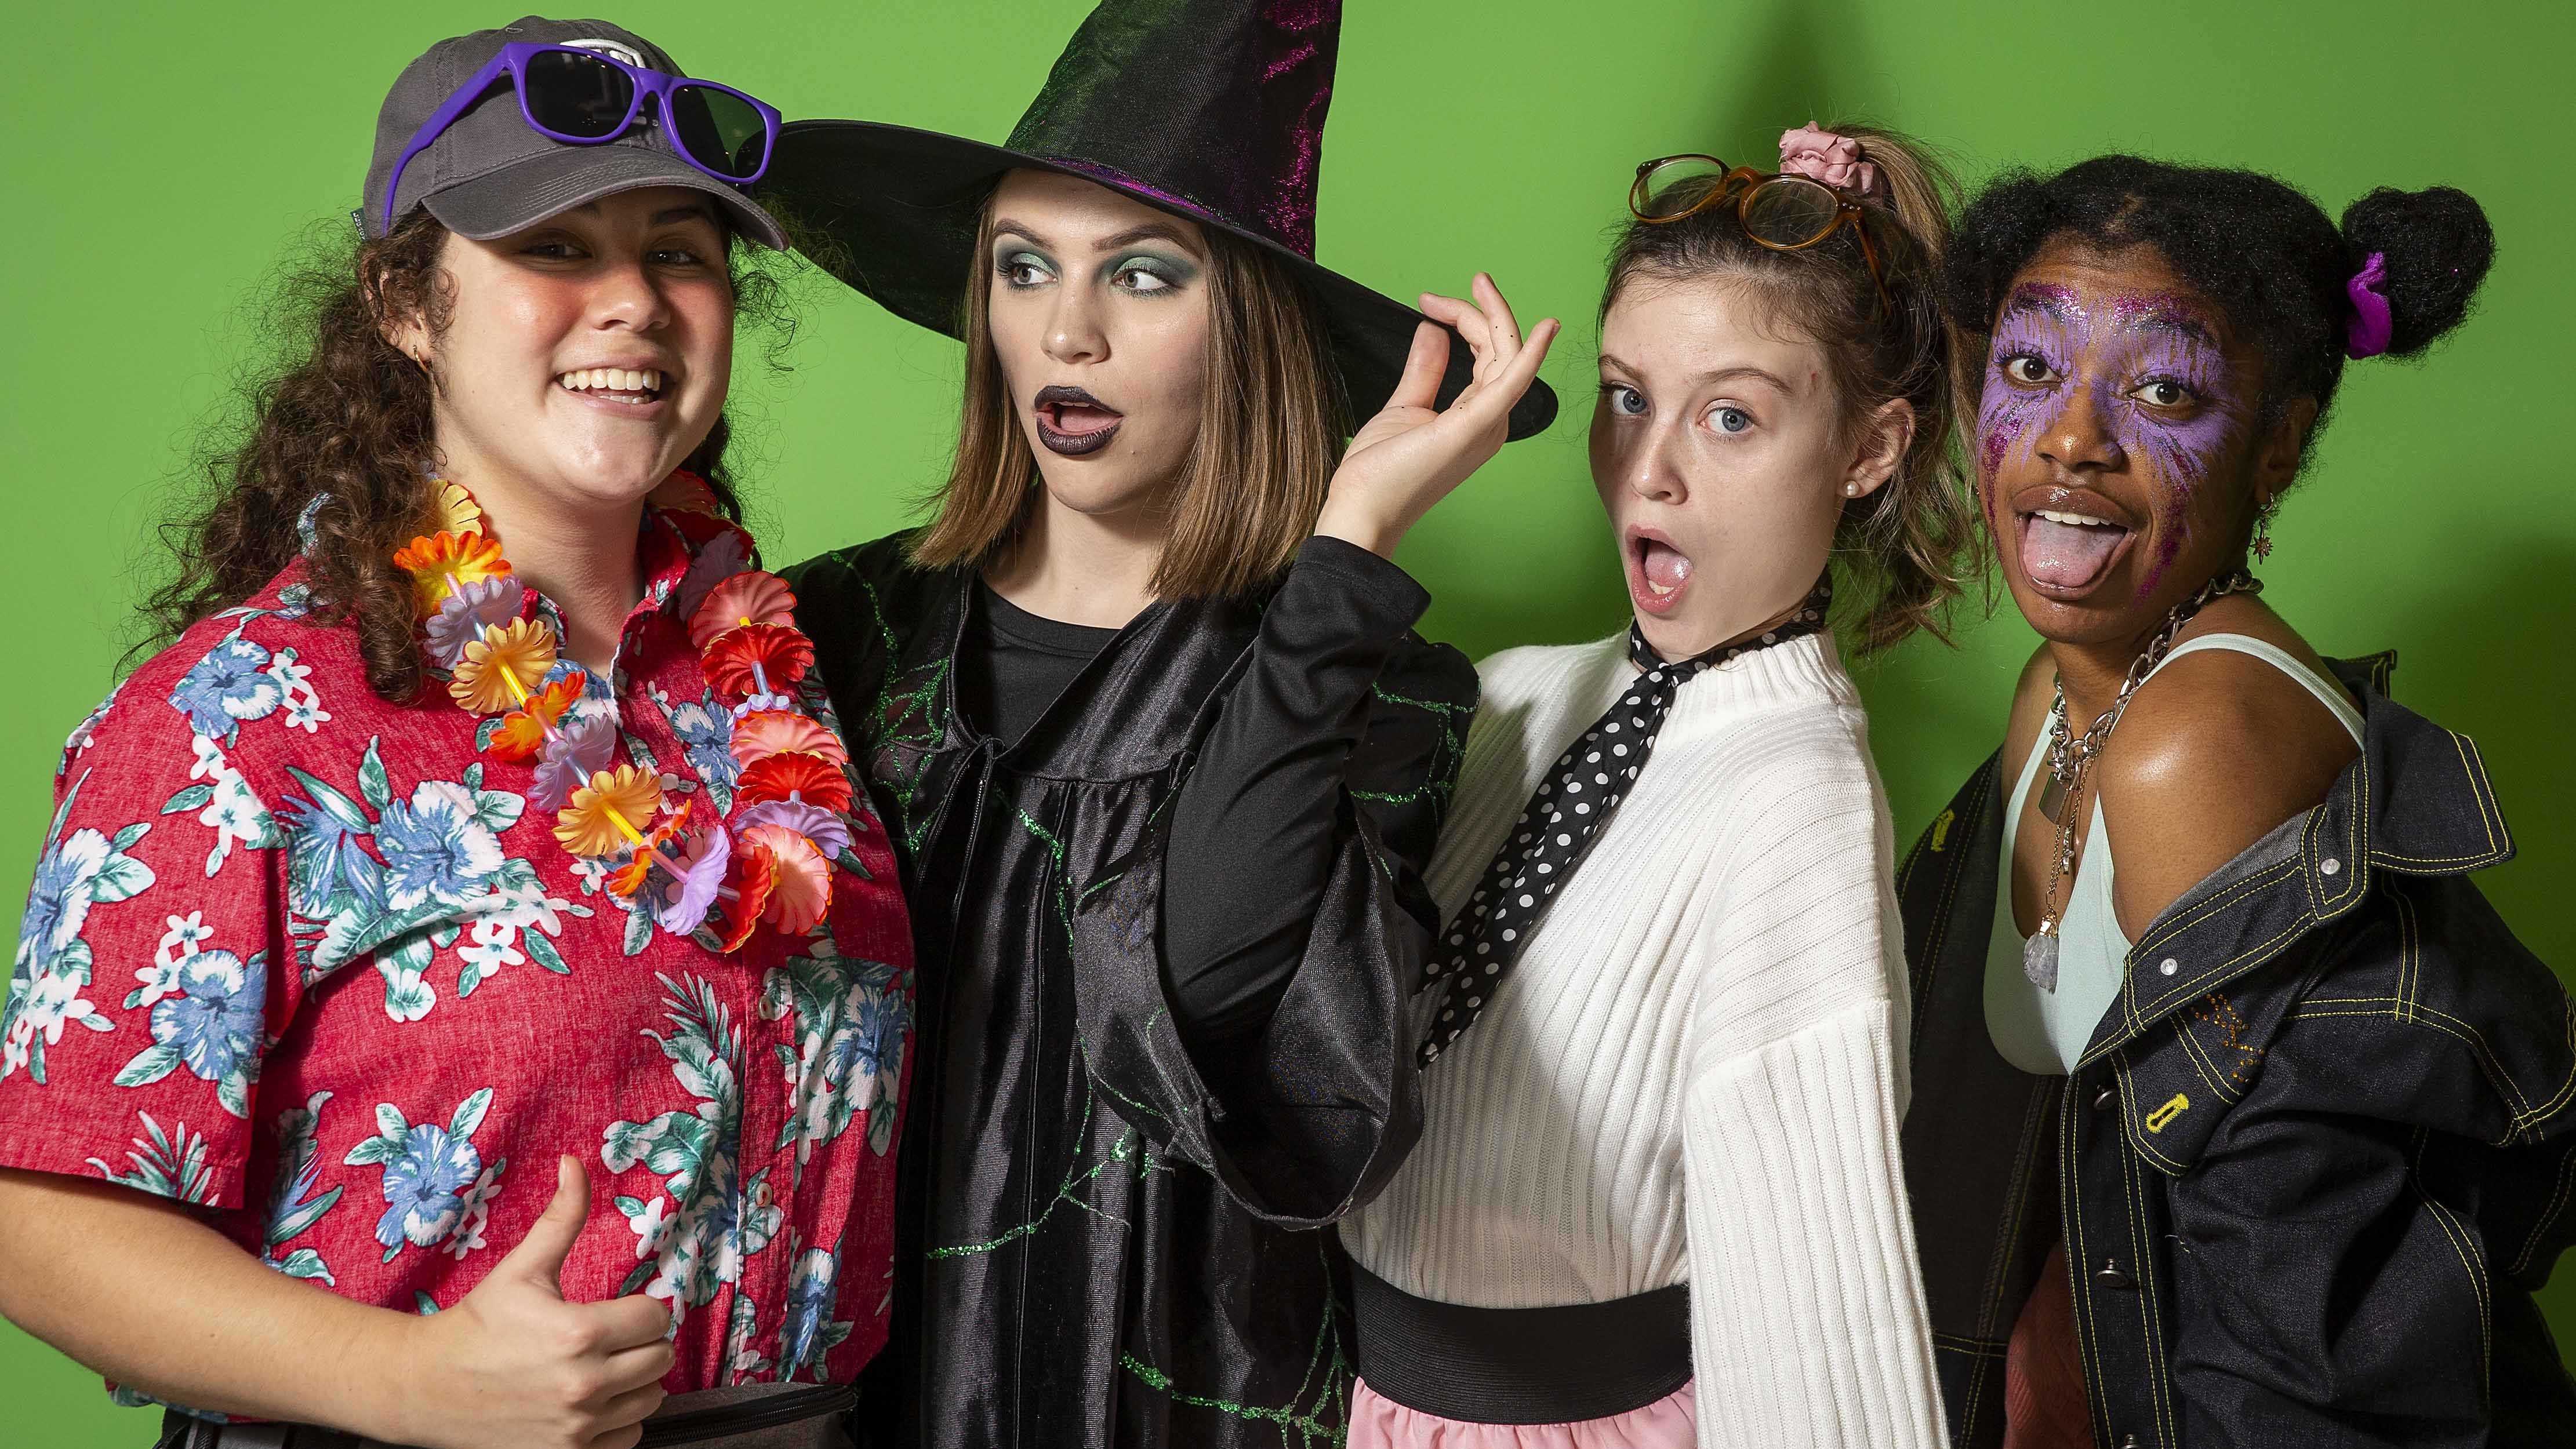 students dressed in costume for Halloween